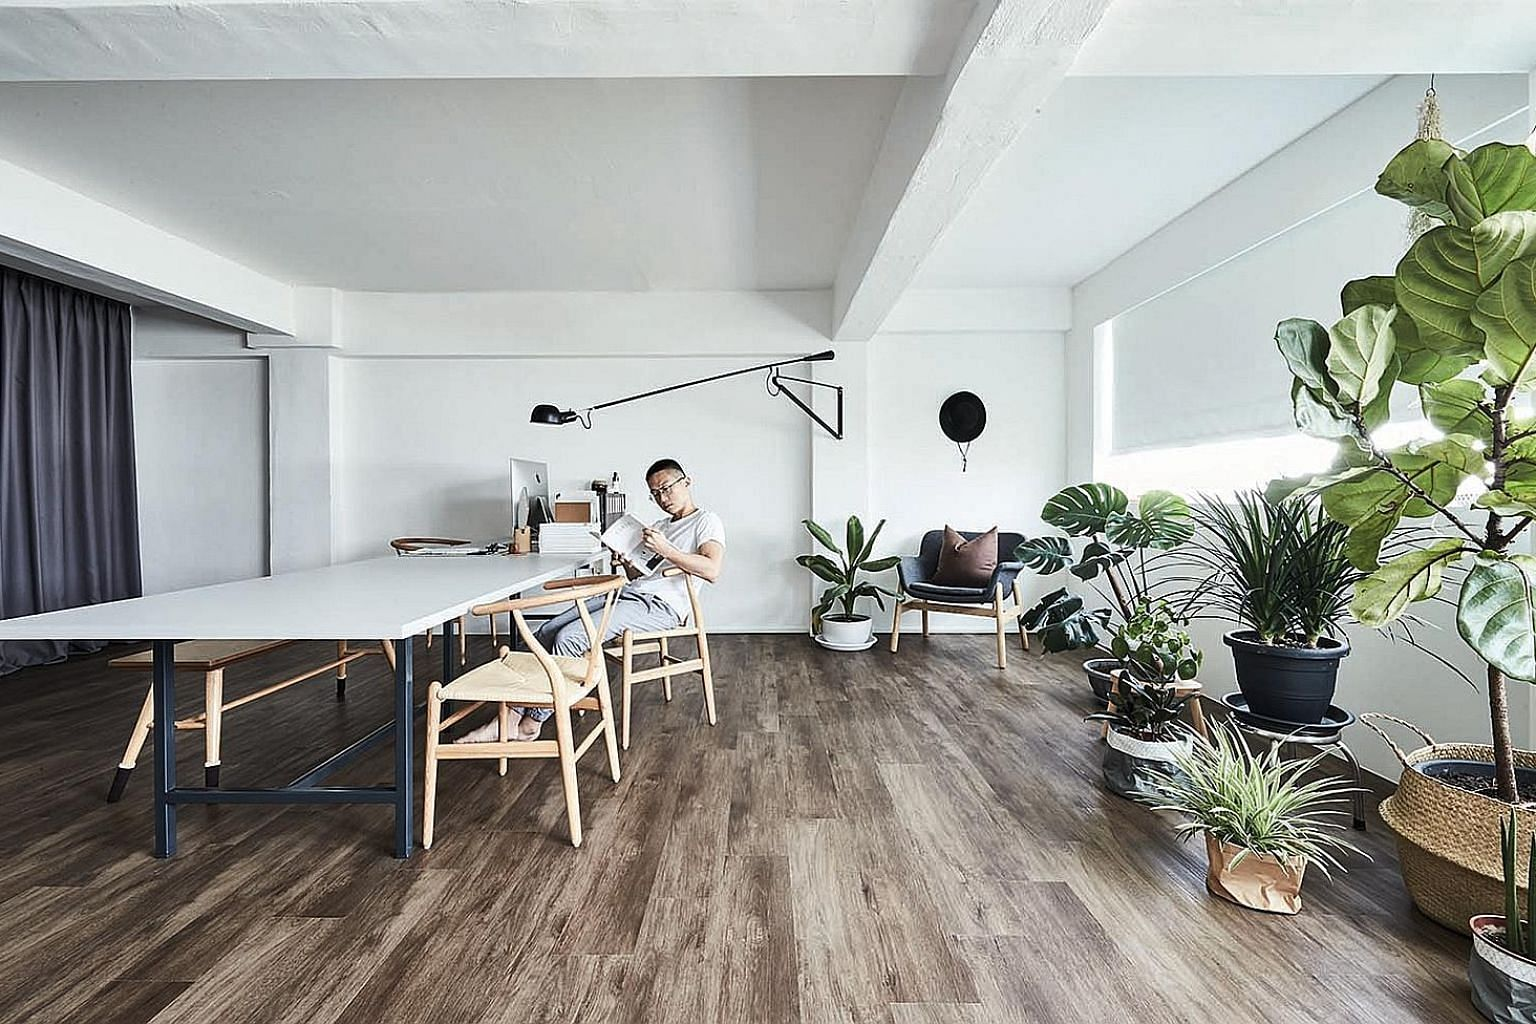 The Hans J. Wegner Wishbone Chairs are favoured by home owner Chia Ching Kai for their ergonomic design and comfort. A sense of fluidity and a fuss-free vibe permeate the minimalist apartment, from the sleeping area (above) to the kitchen (top). An a